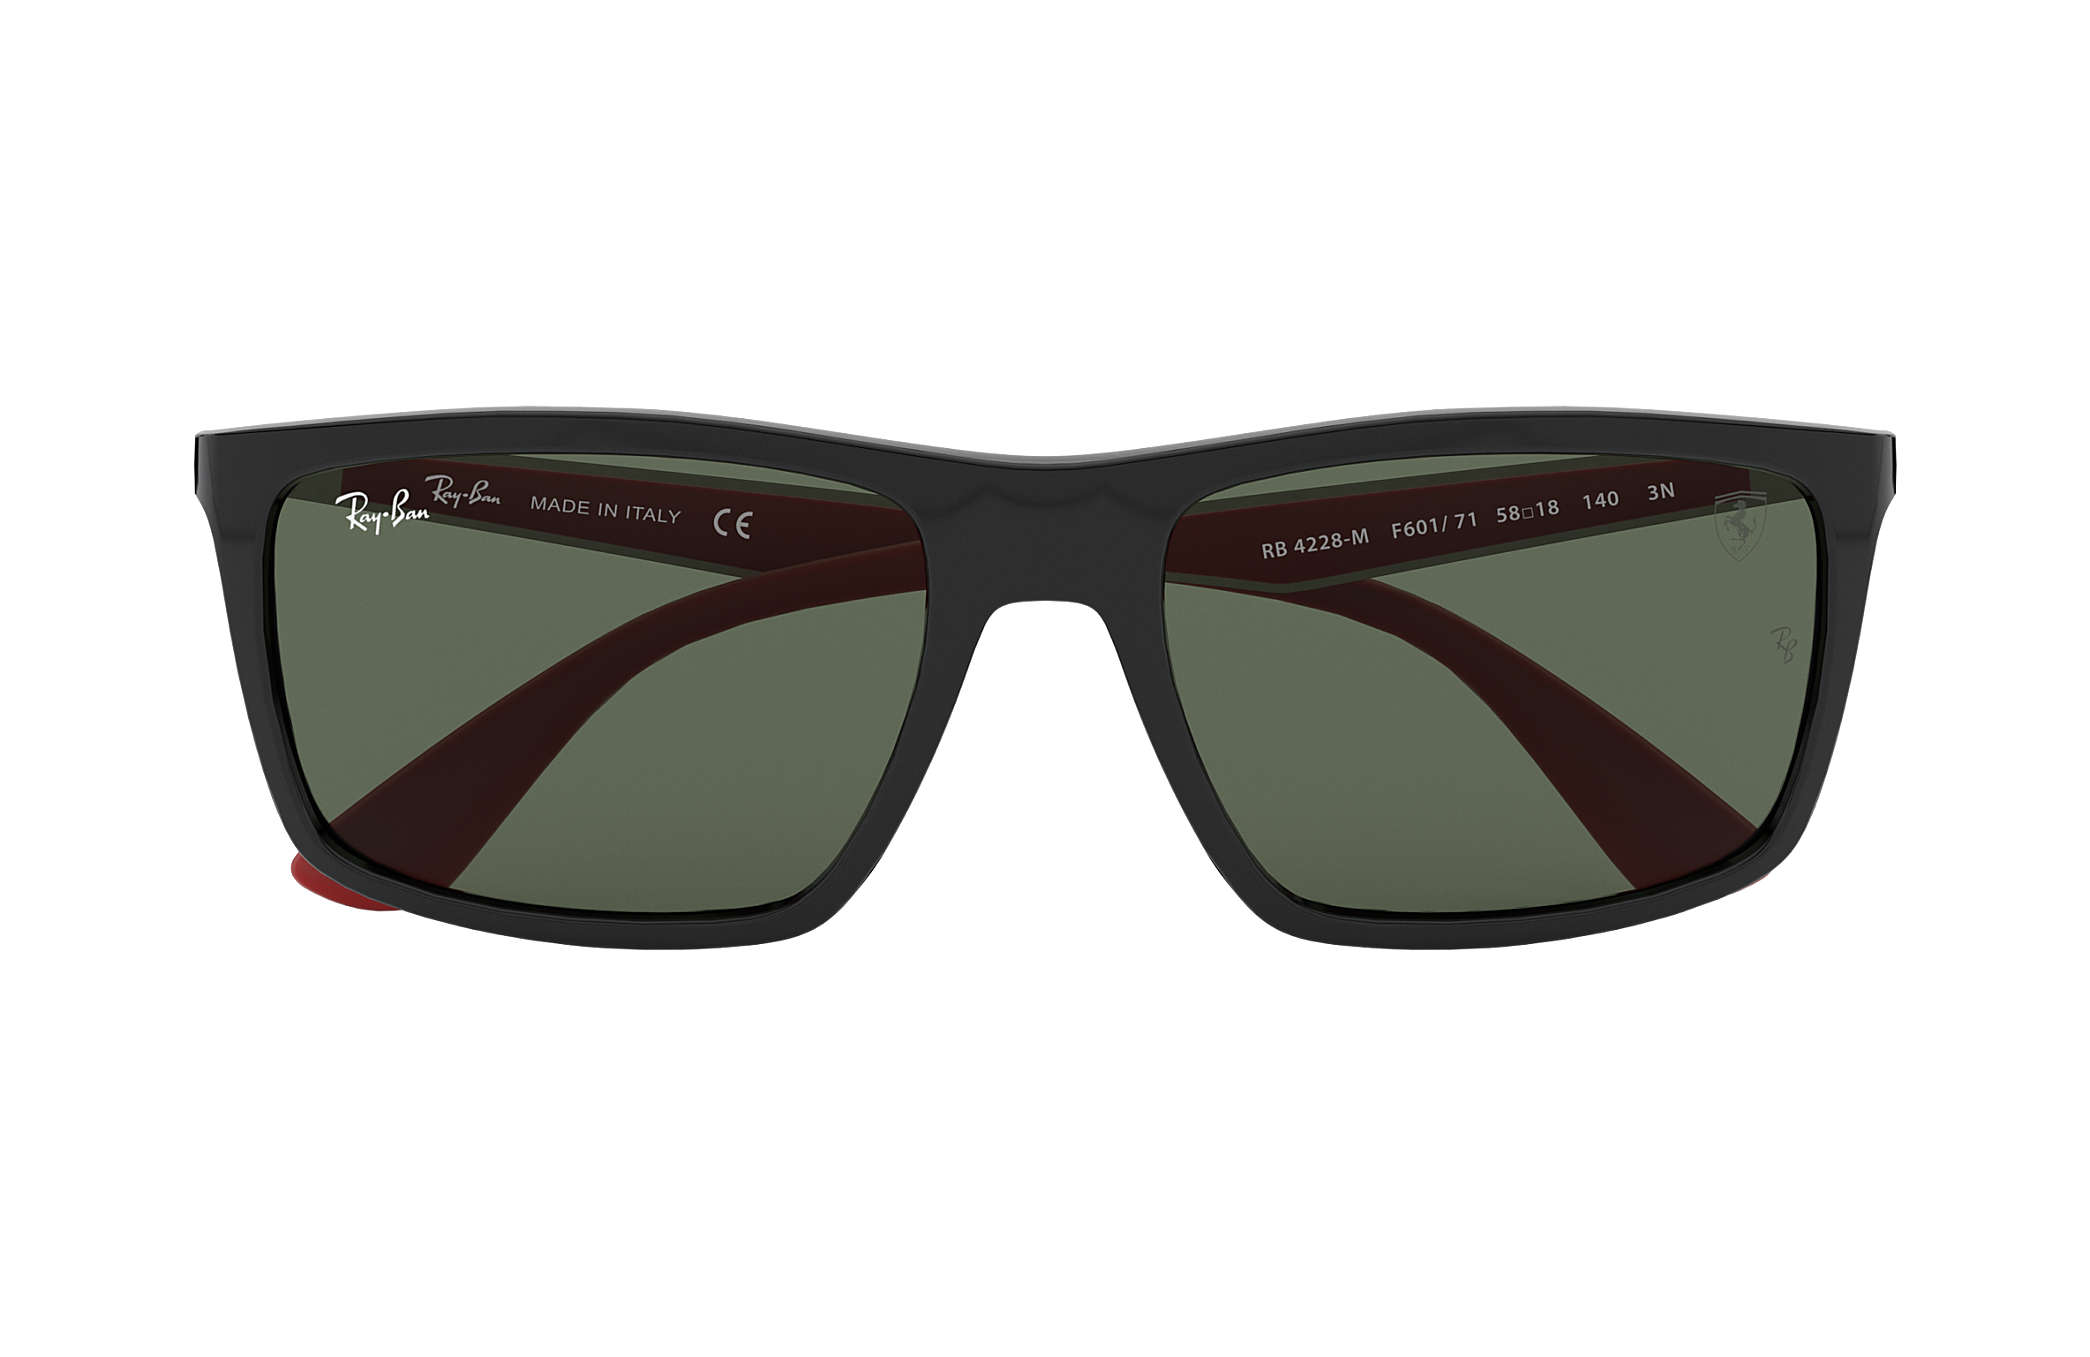 Ray-Ban Rb4228m Scuderia Ferrari Collection RB4228M Schwarz - Nylon ...